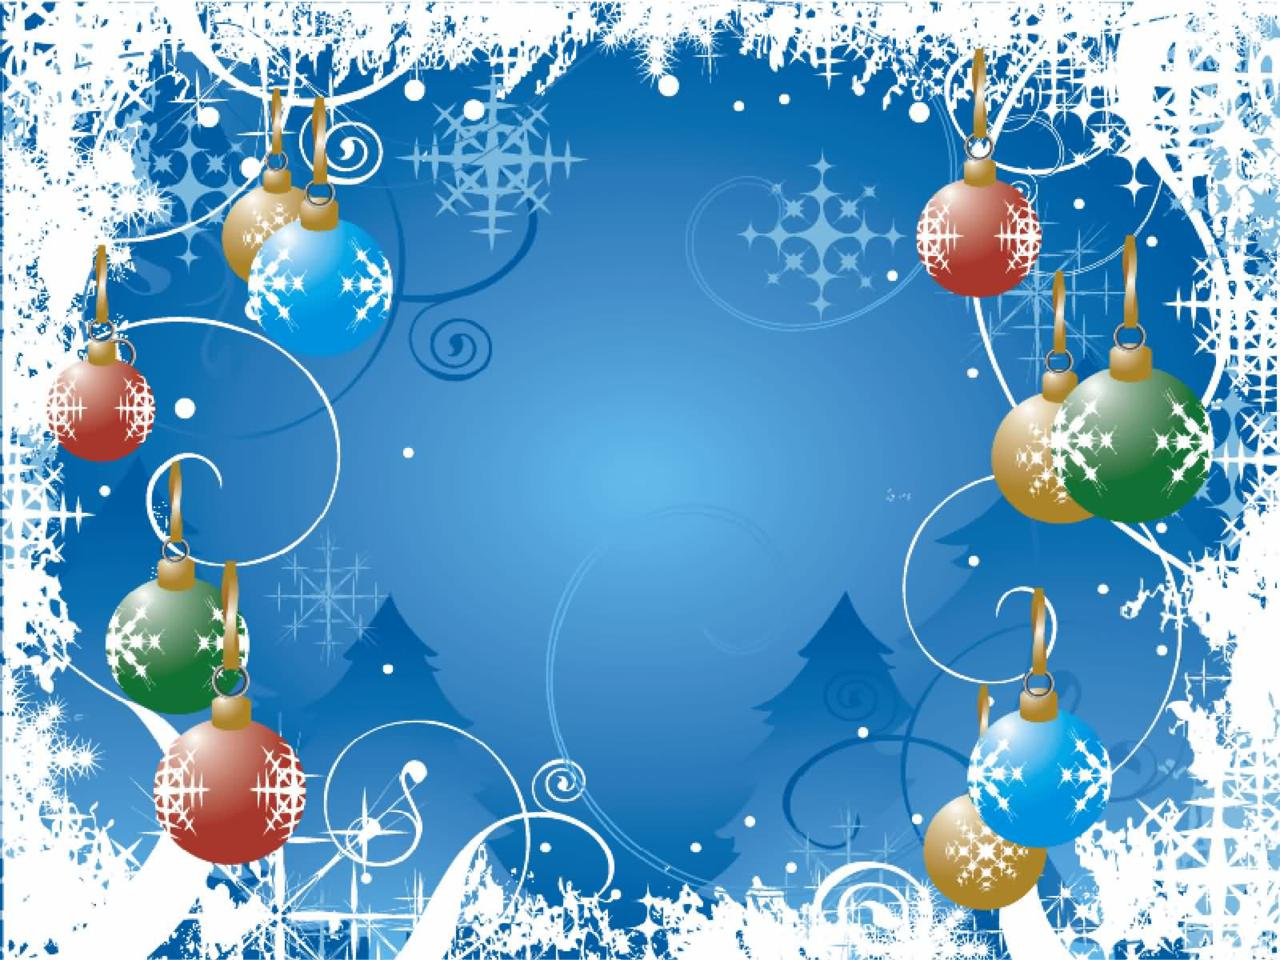 Christmas Wallpaper For Computer   52 Group Wallpapers 1280x960